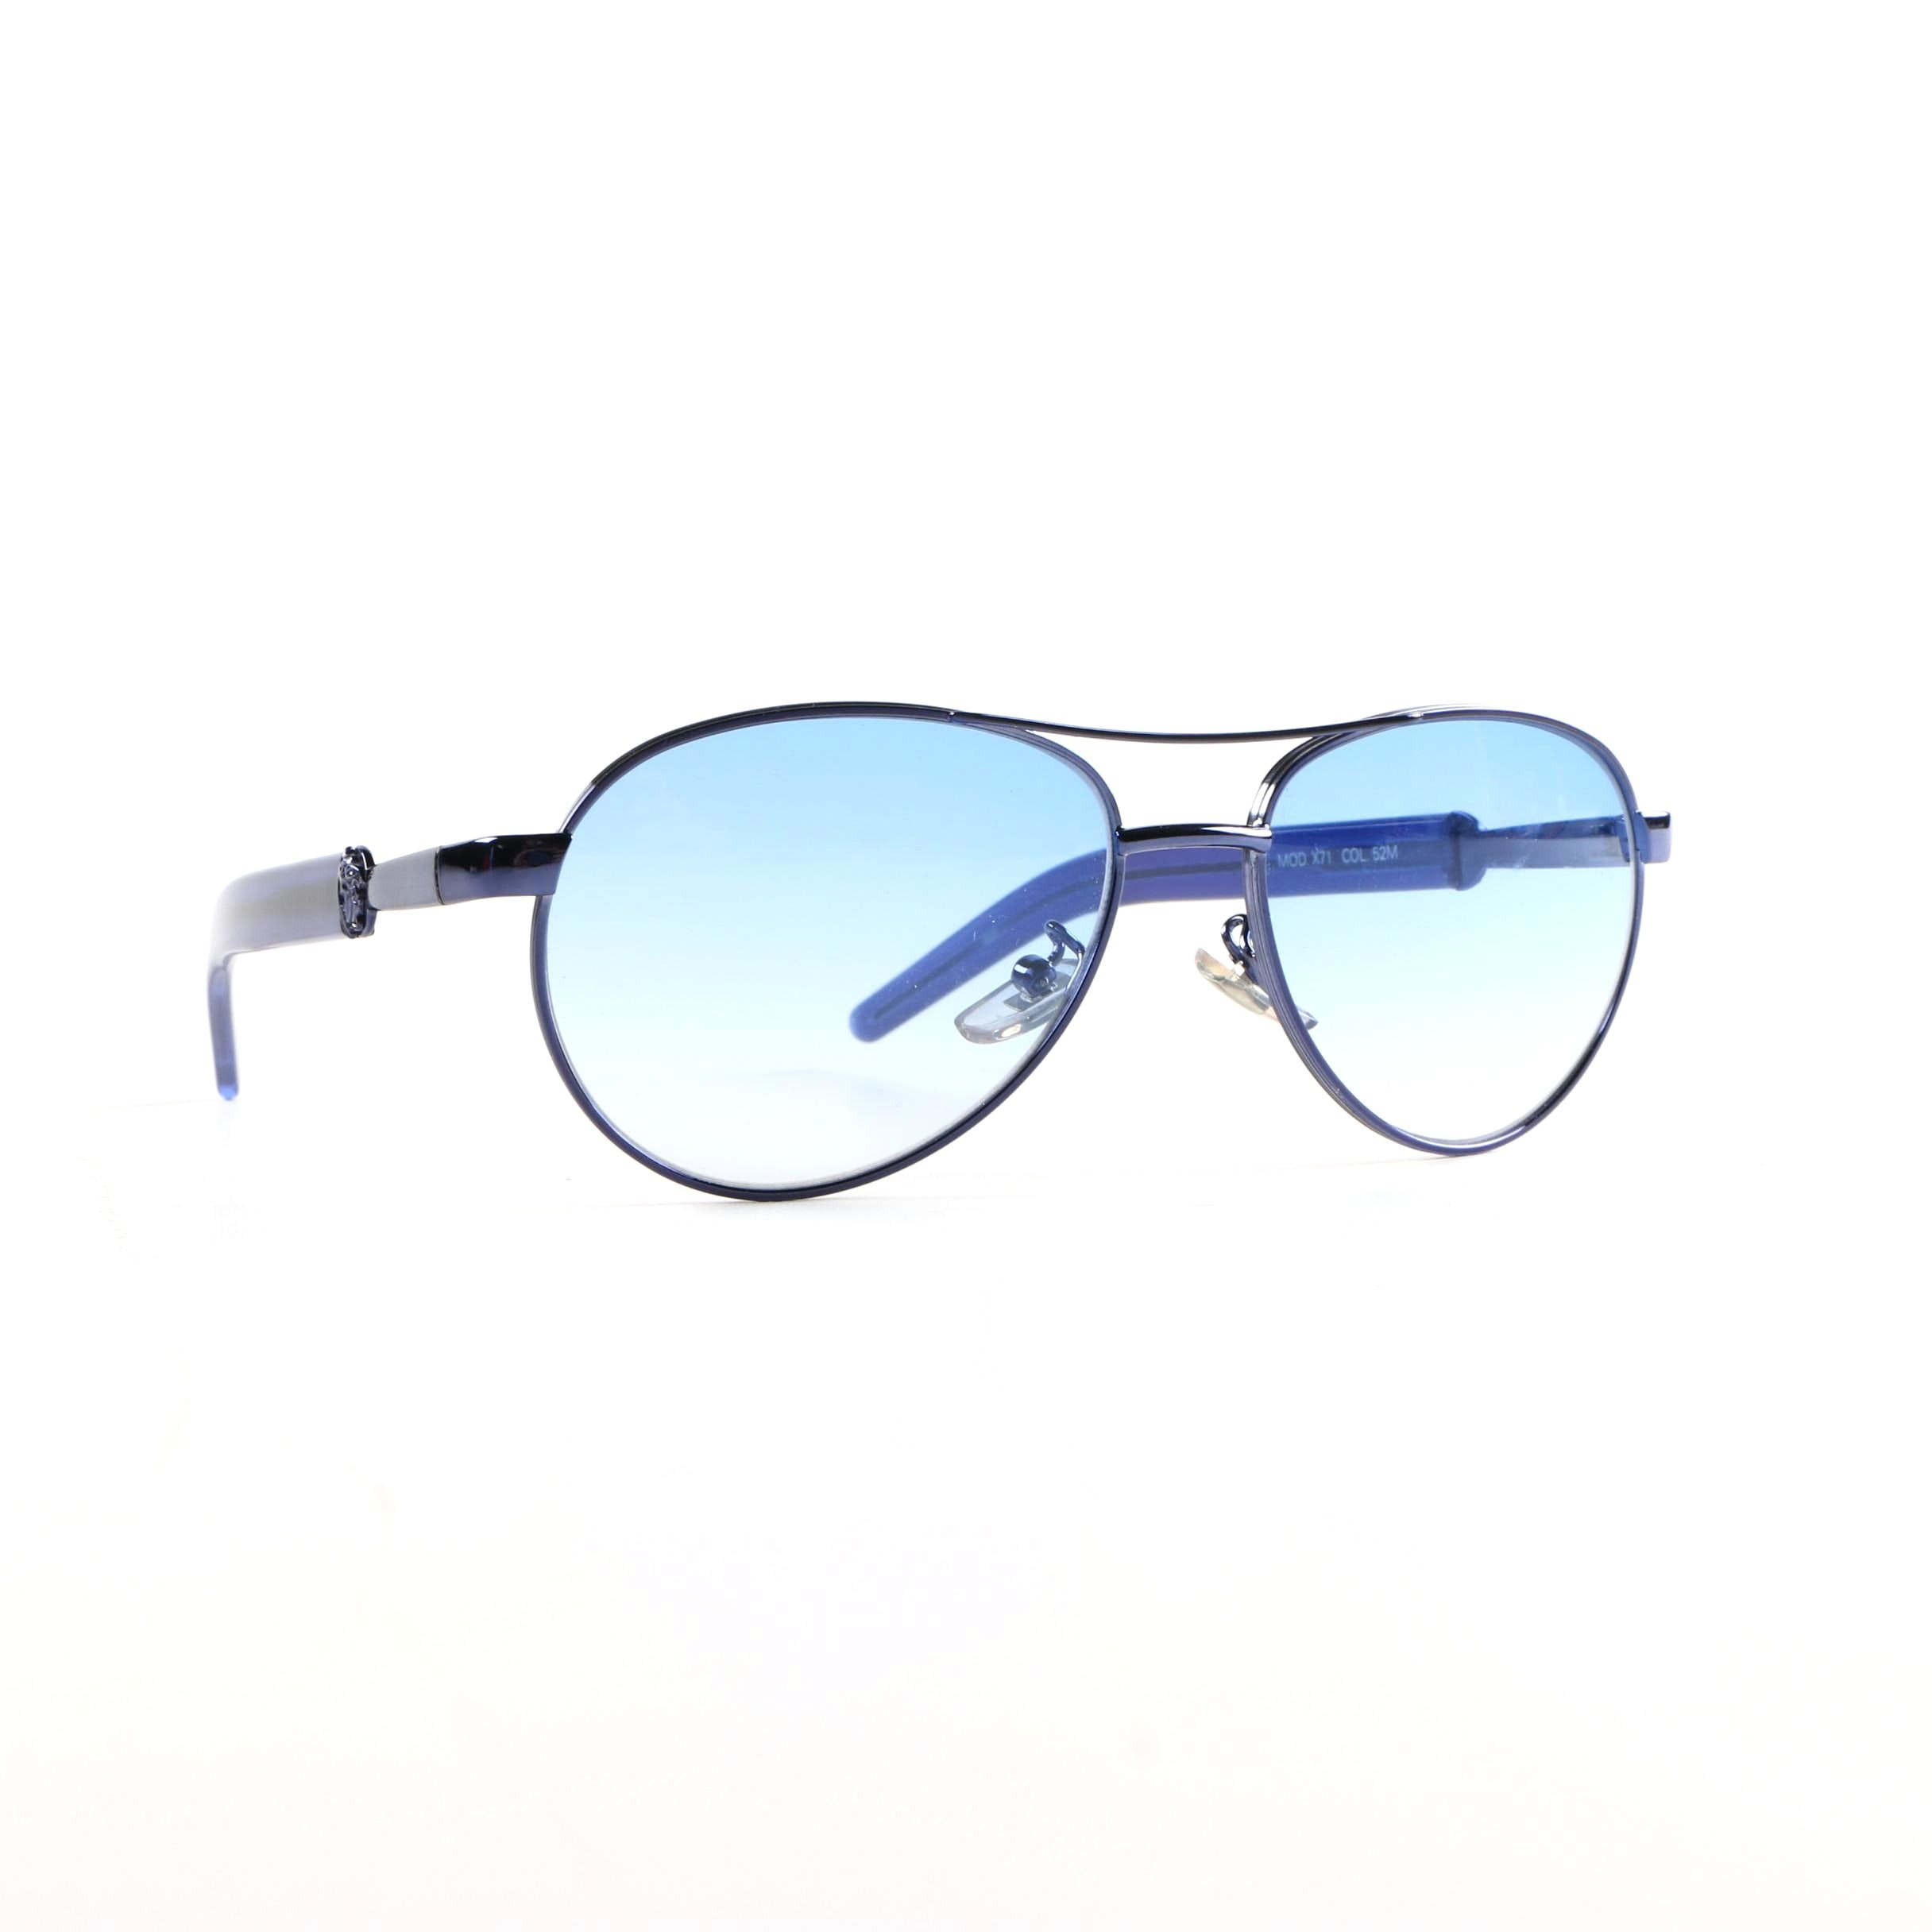 Gianni Versace Aviator Sunglasses